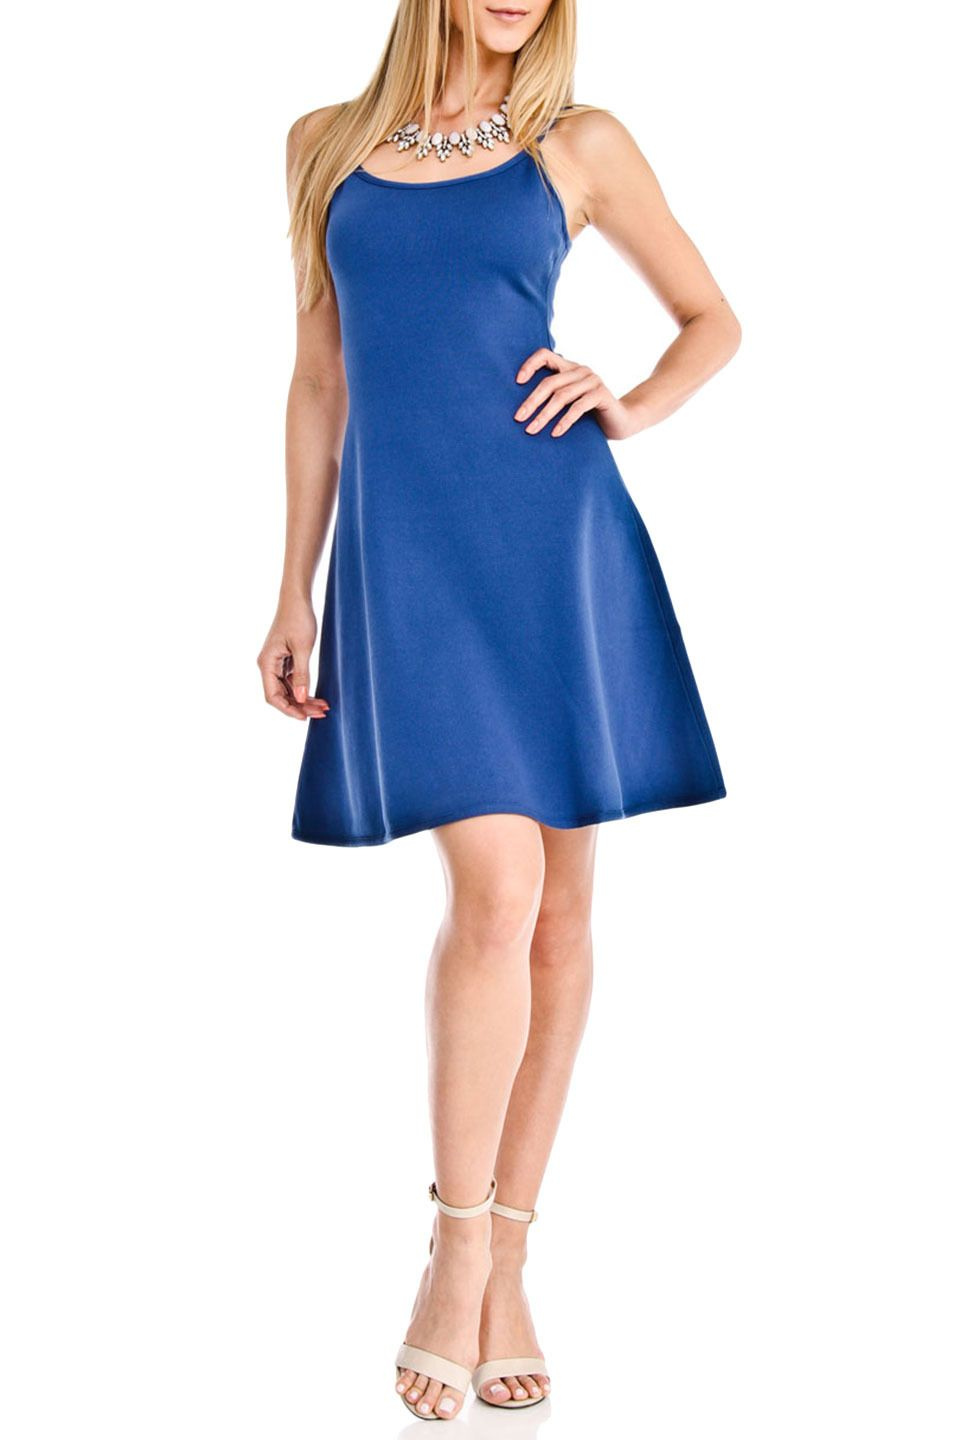 Dress Prada Kjoler Abito Blue In Pinterest 2 Korte 1w5UwrxTq